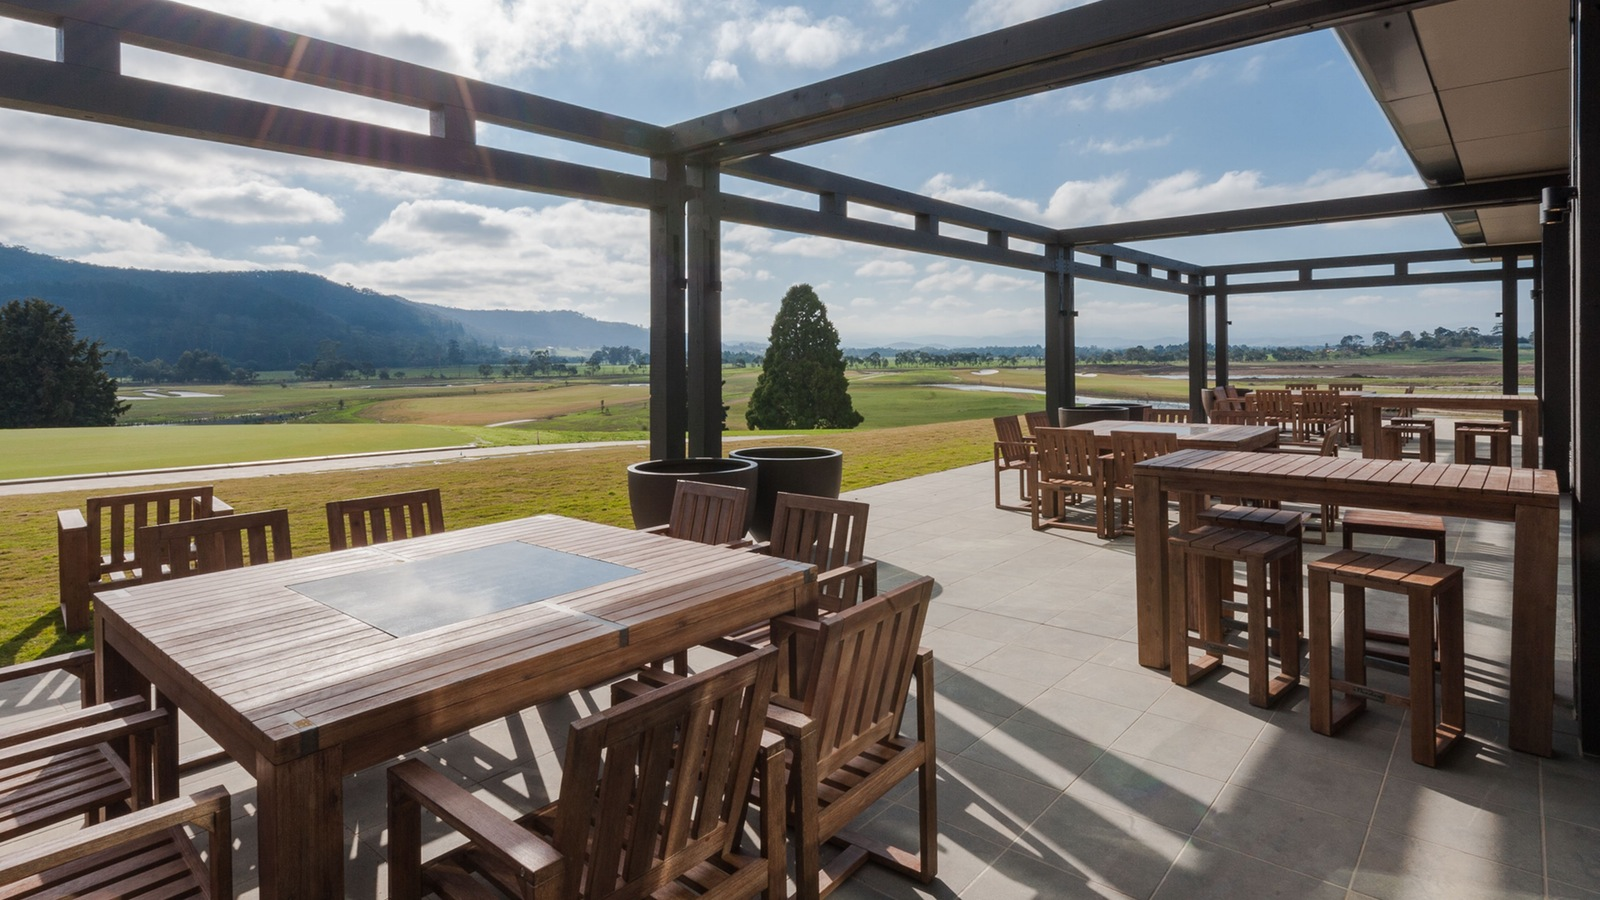 Outdoor terrace lounge overlooking The Eastern Golf Club